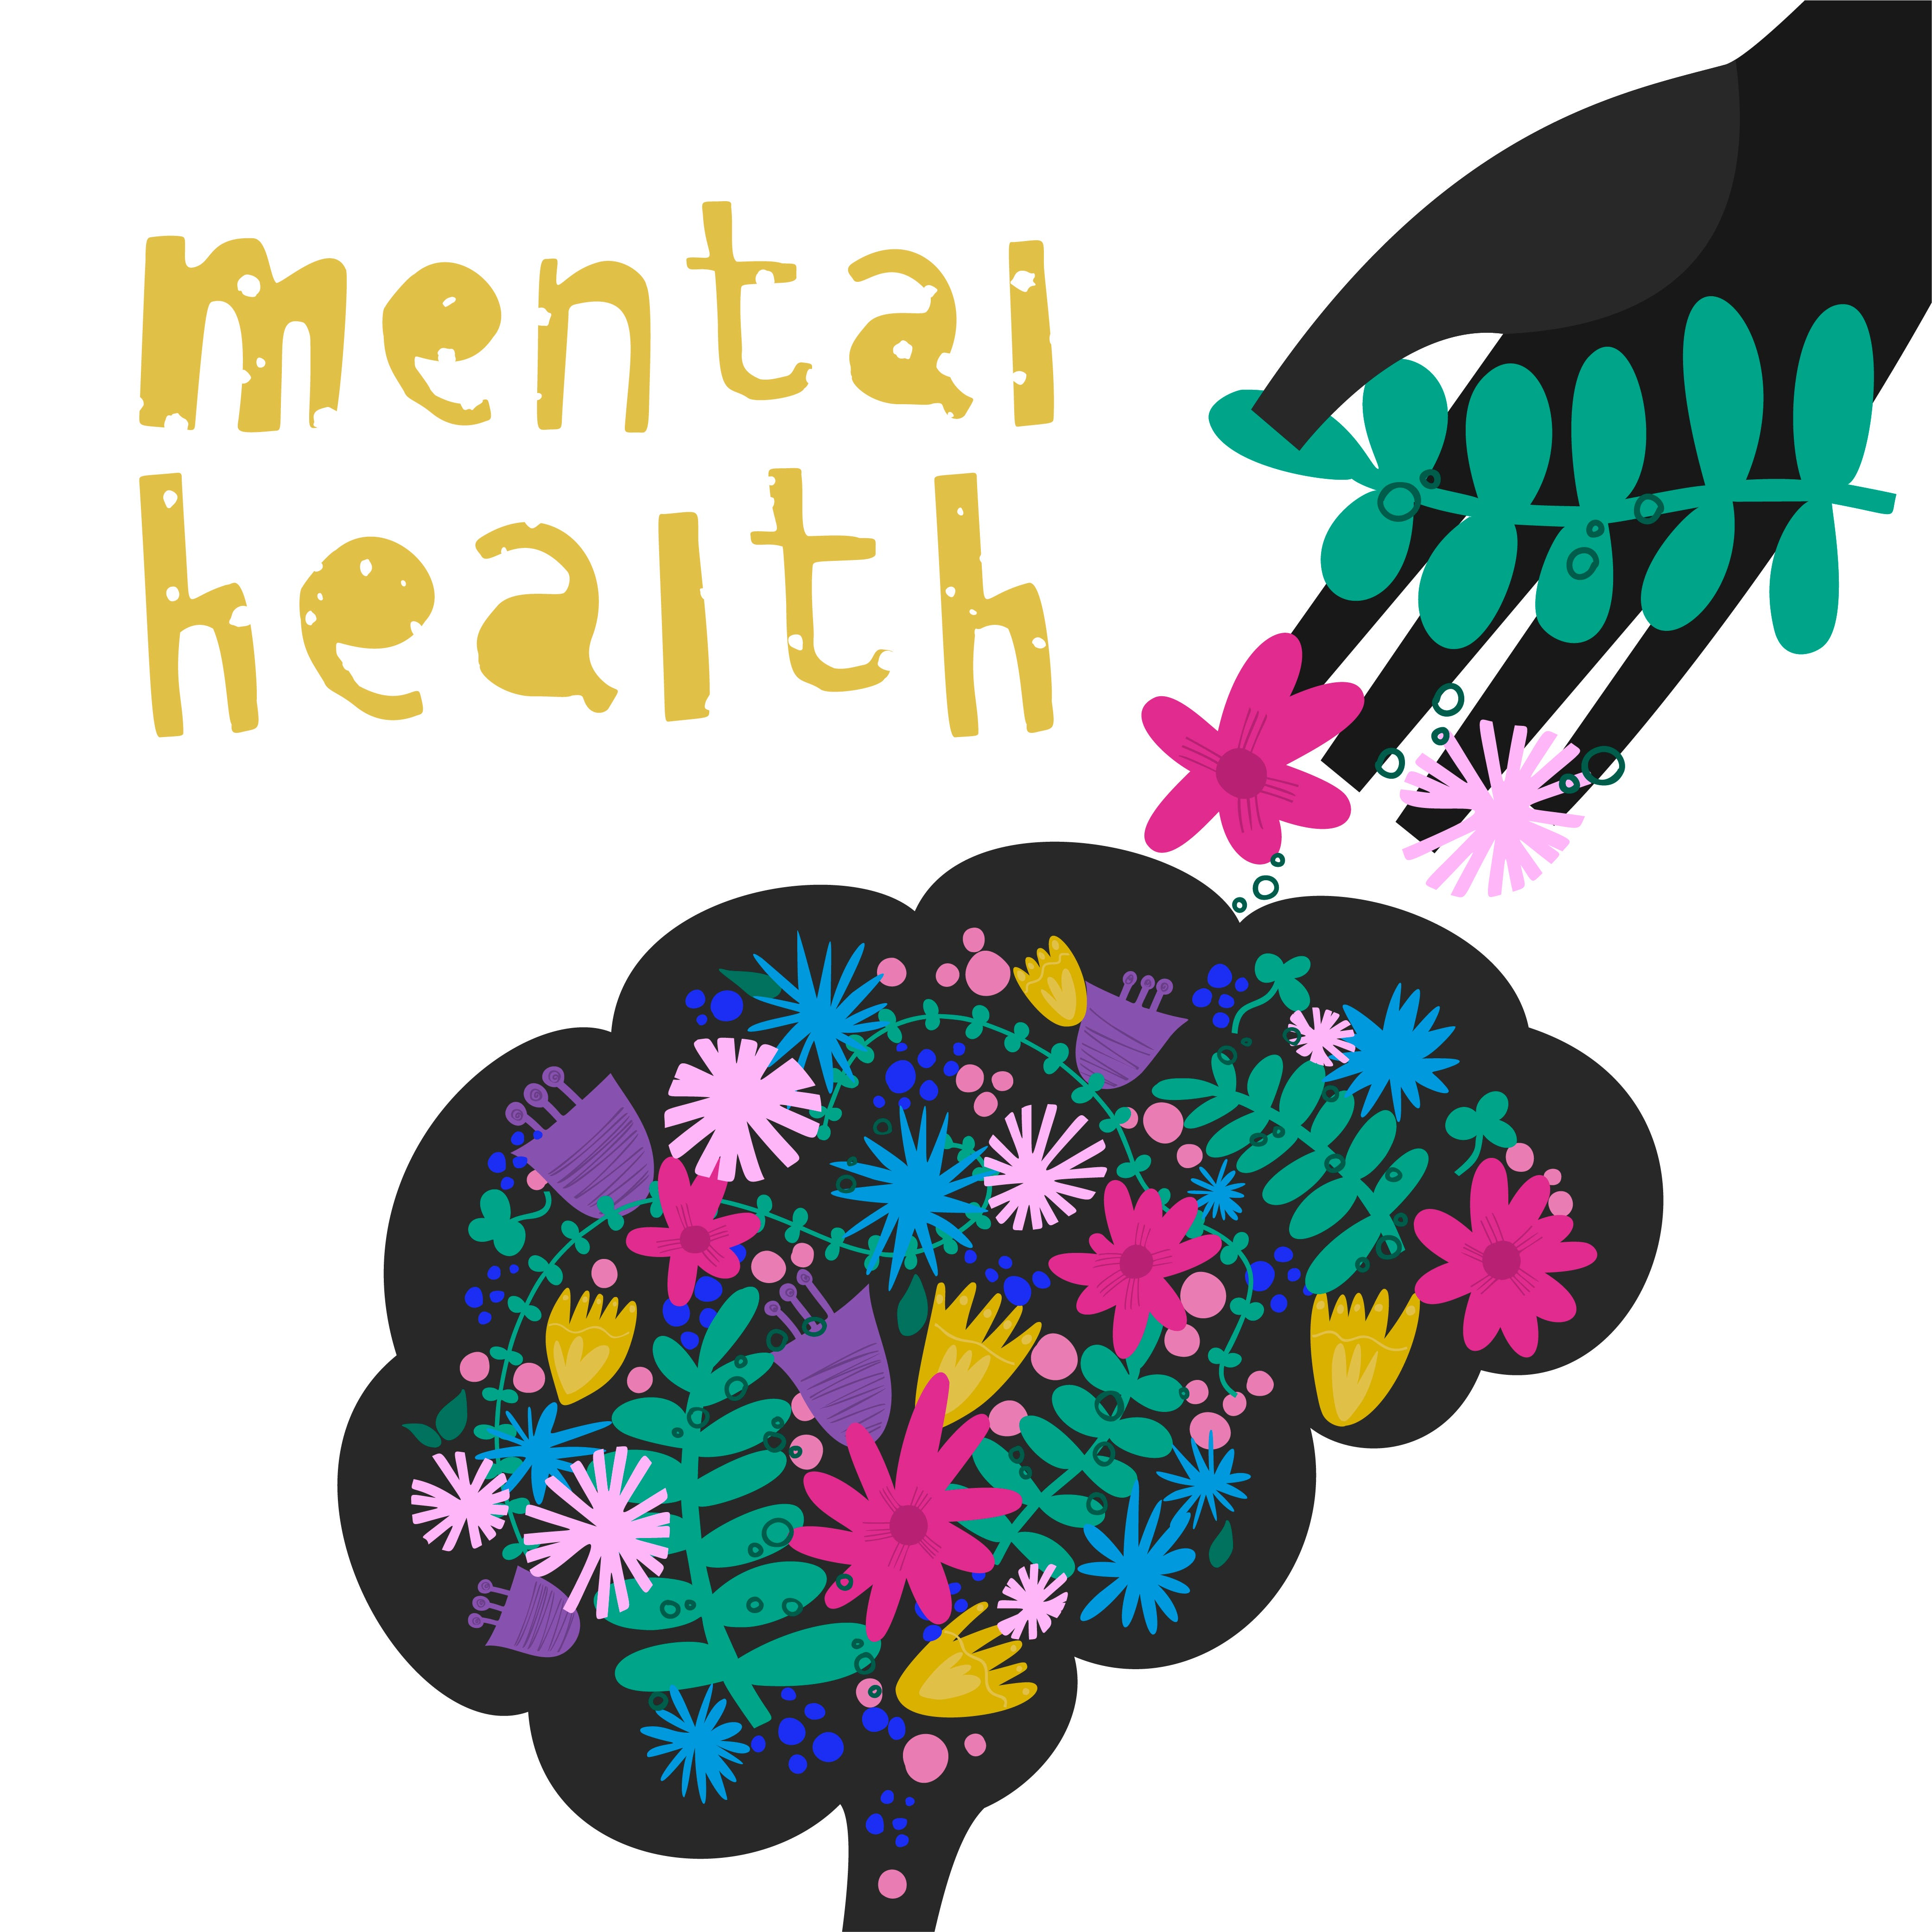 Many people are resolving to focus on mental health in 2019.